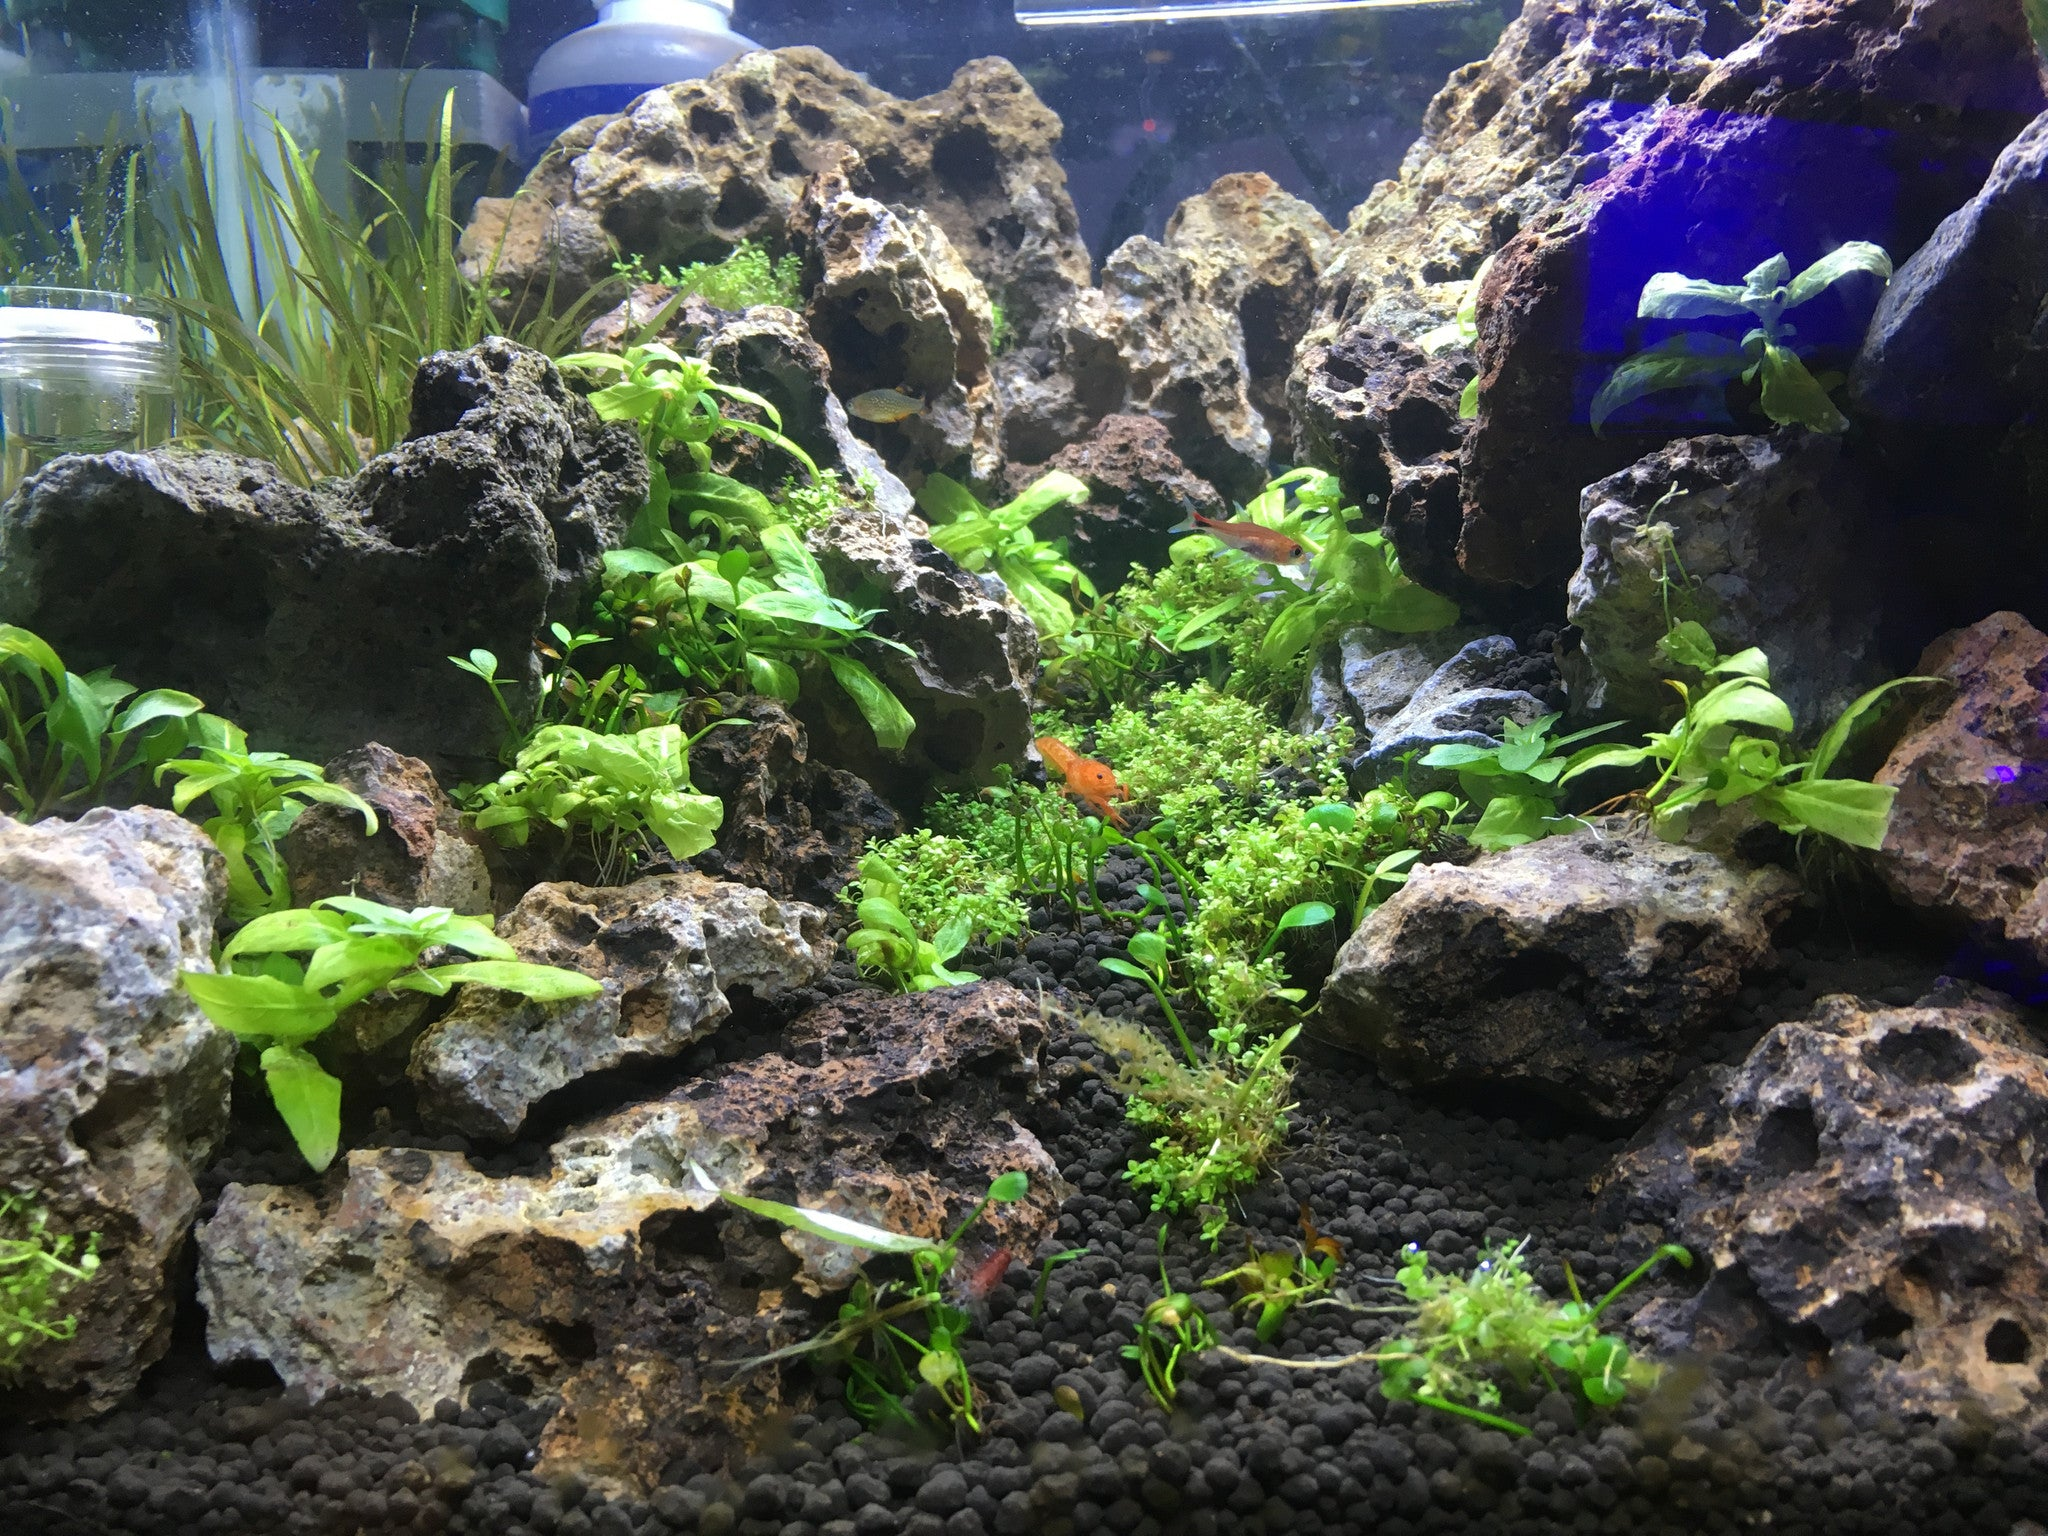 Schools of fish best aquariums for your dorm room fish for Best aquarium fish